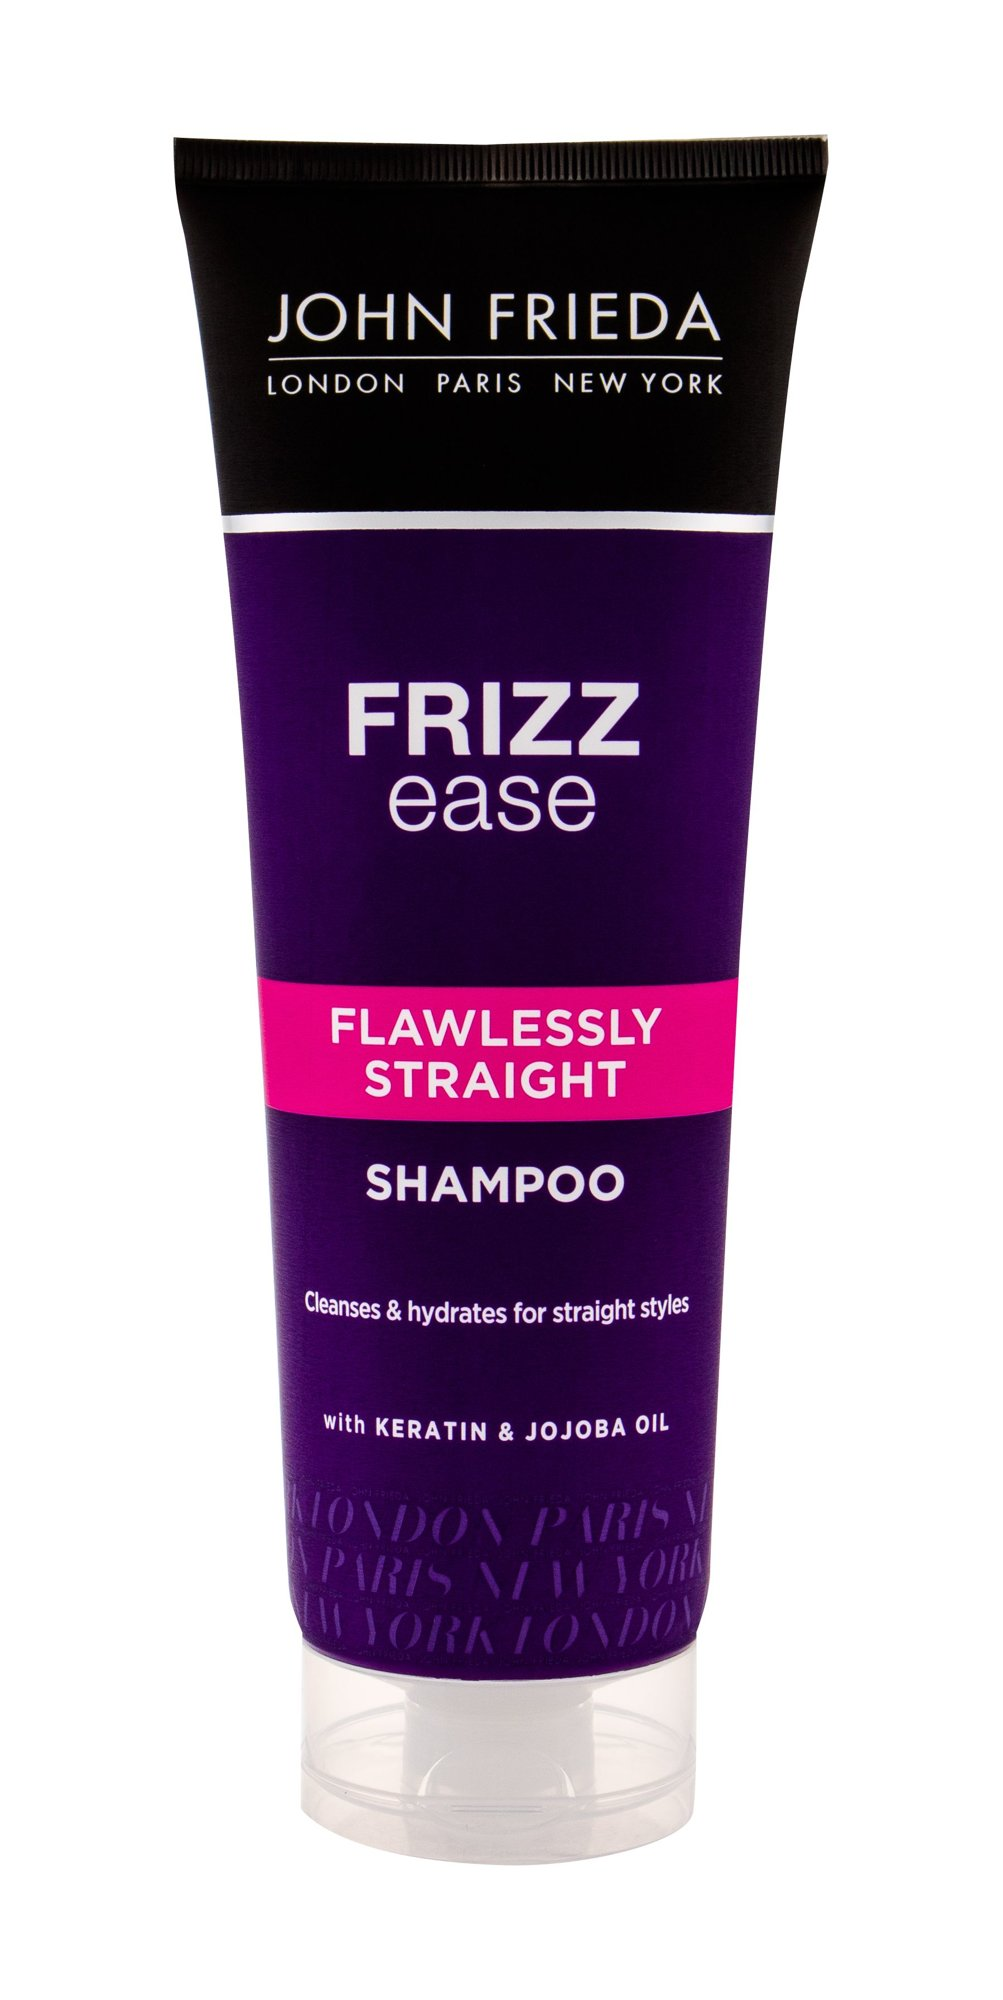 John Frieda Frizz Ease Shampoo 250ml